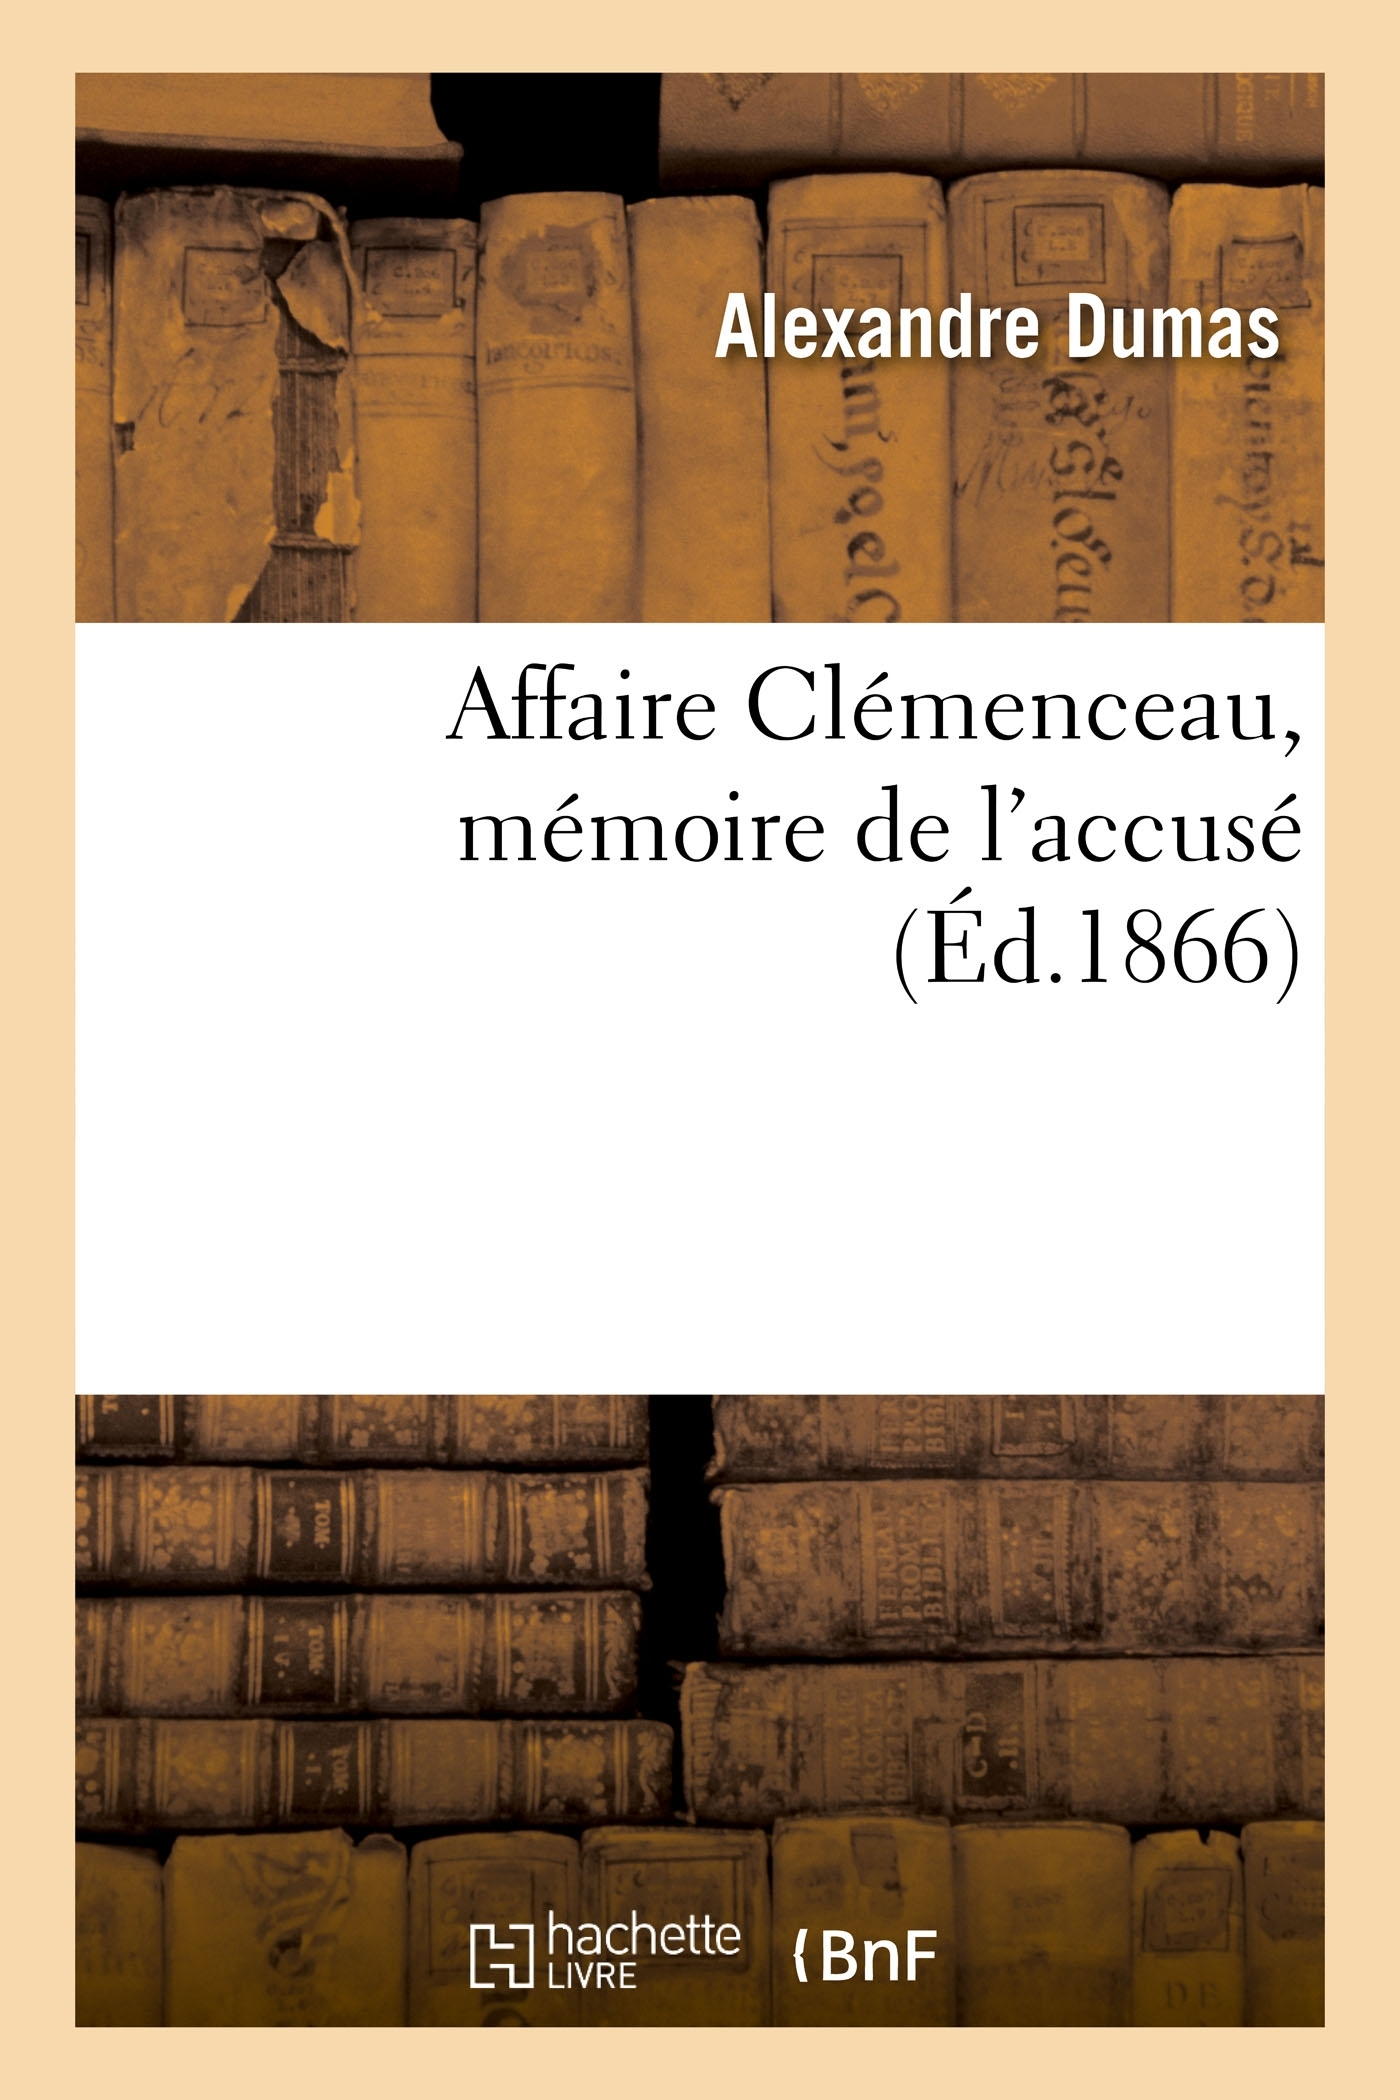 AFFAIRE CLEMENCEAU, MEMOIRE DE L'ACCUSE